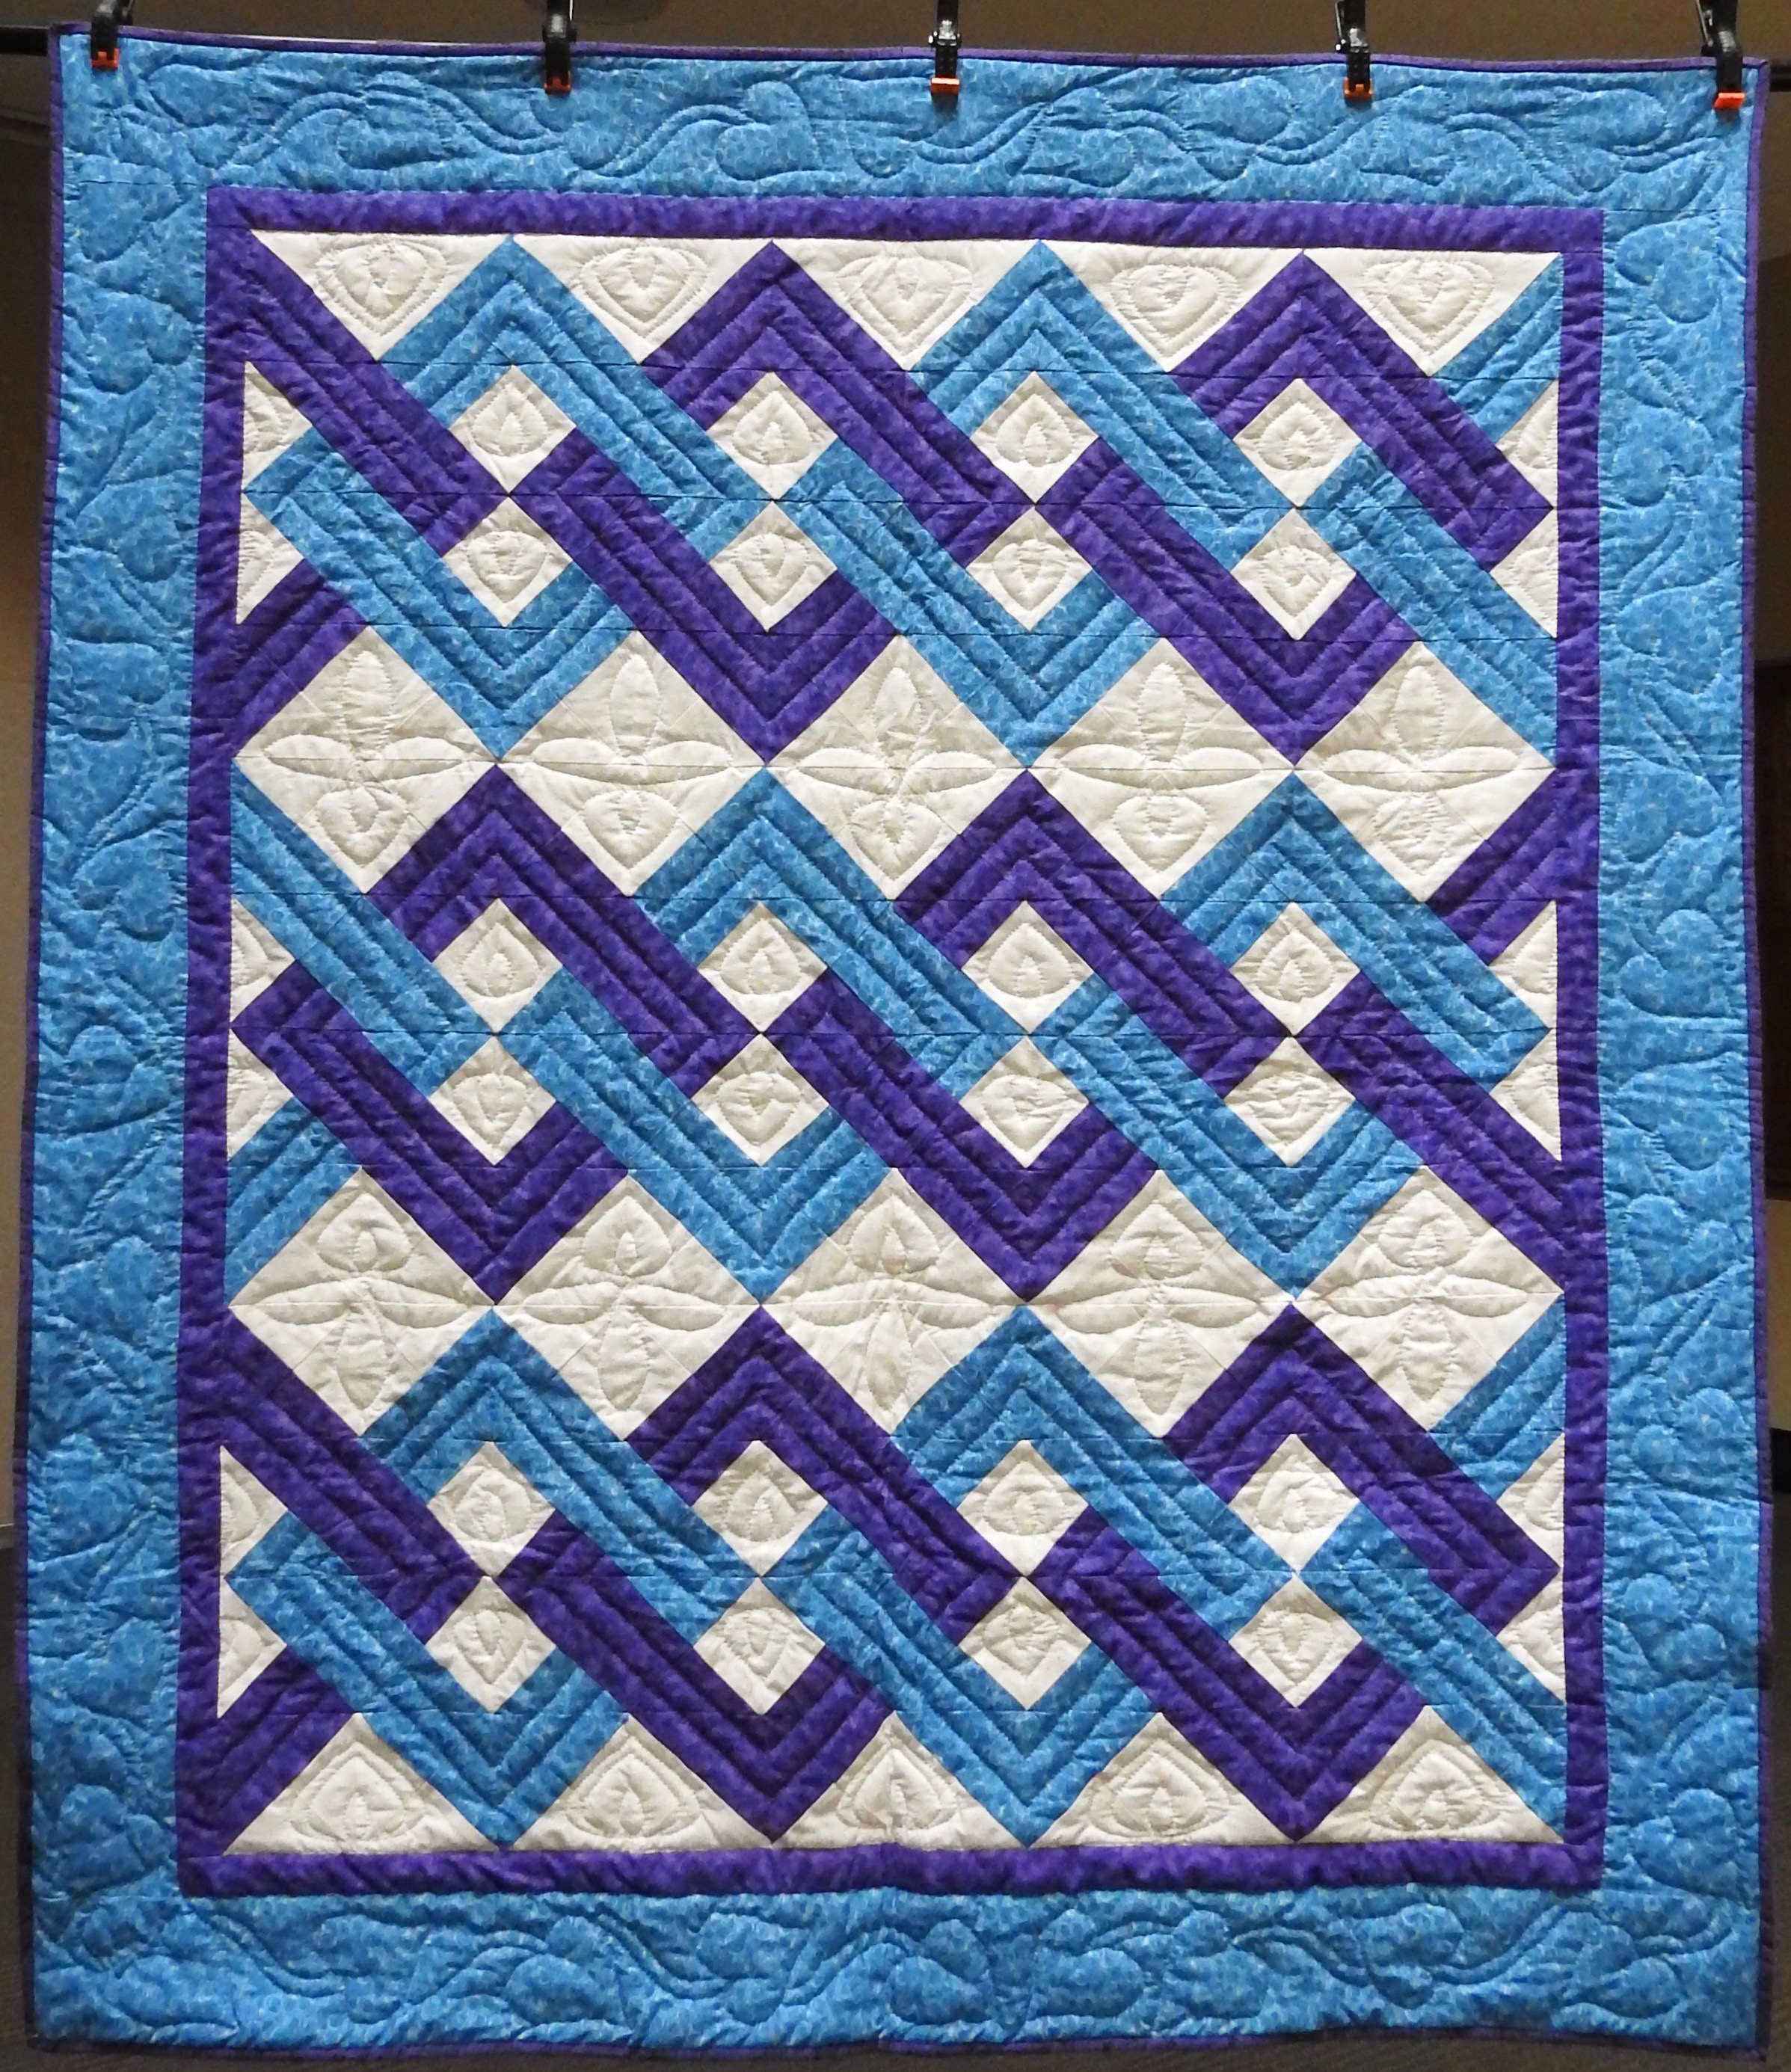 Interlocking Squares, Pieced, Hand Quilted by Evergreen Quilters, Anonymously donated, 58 x 64""